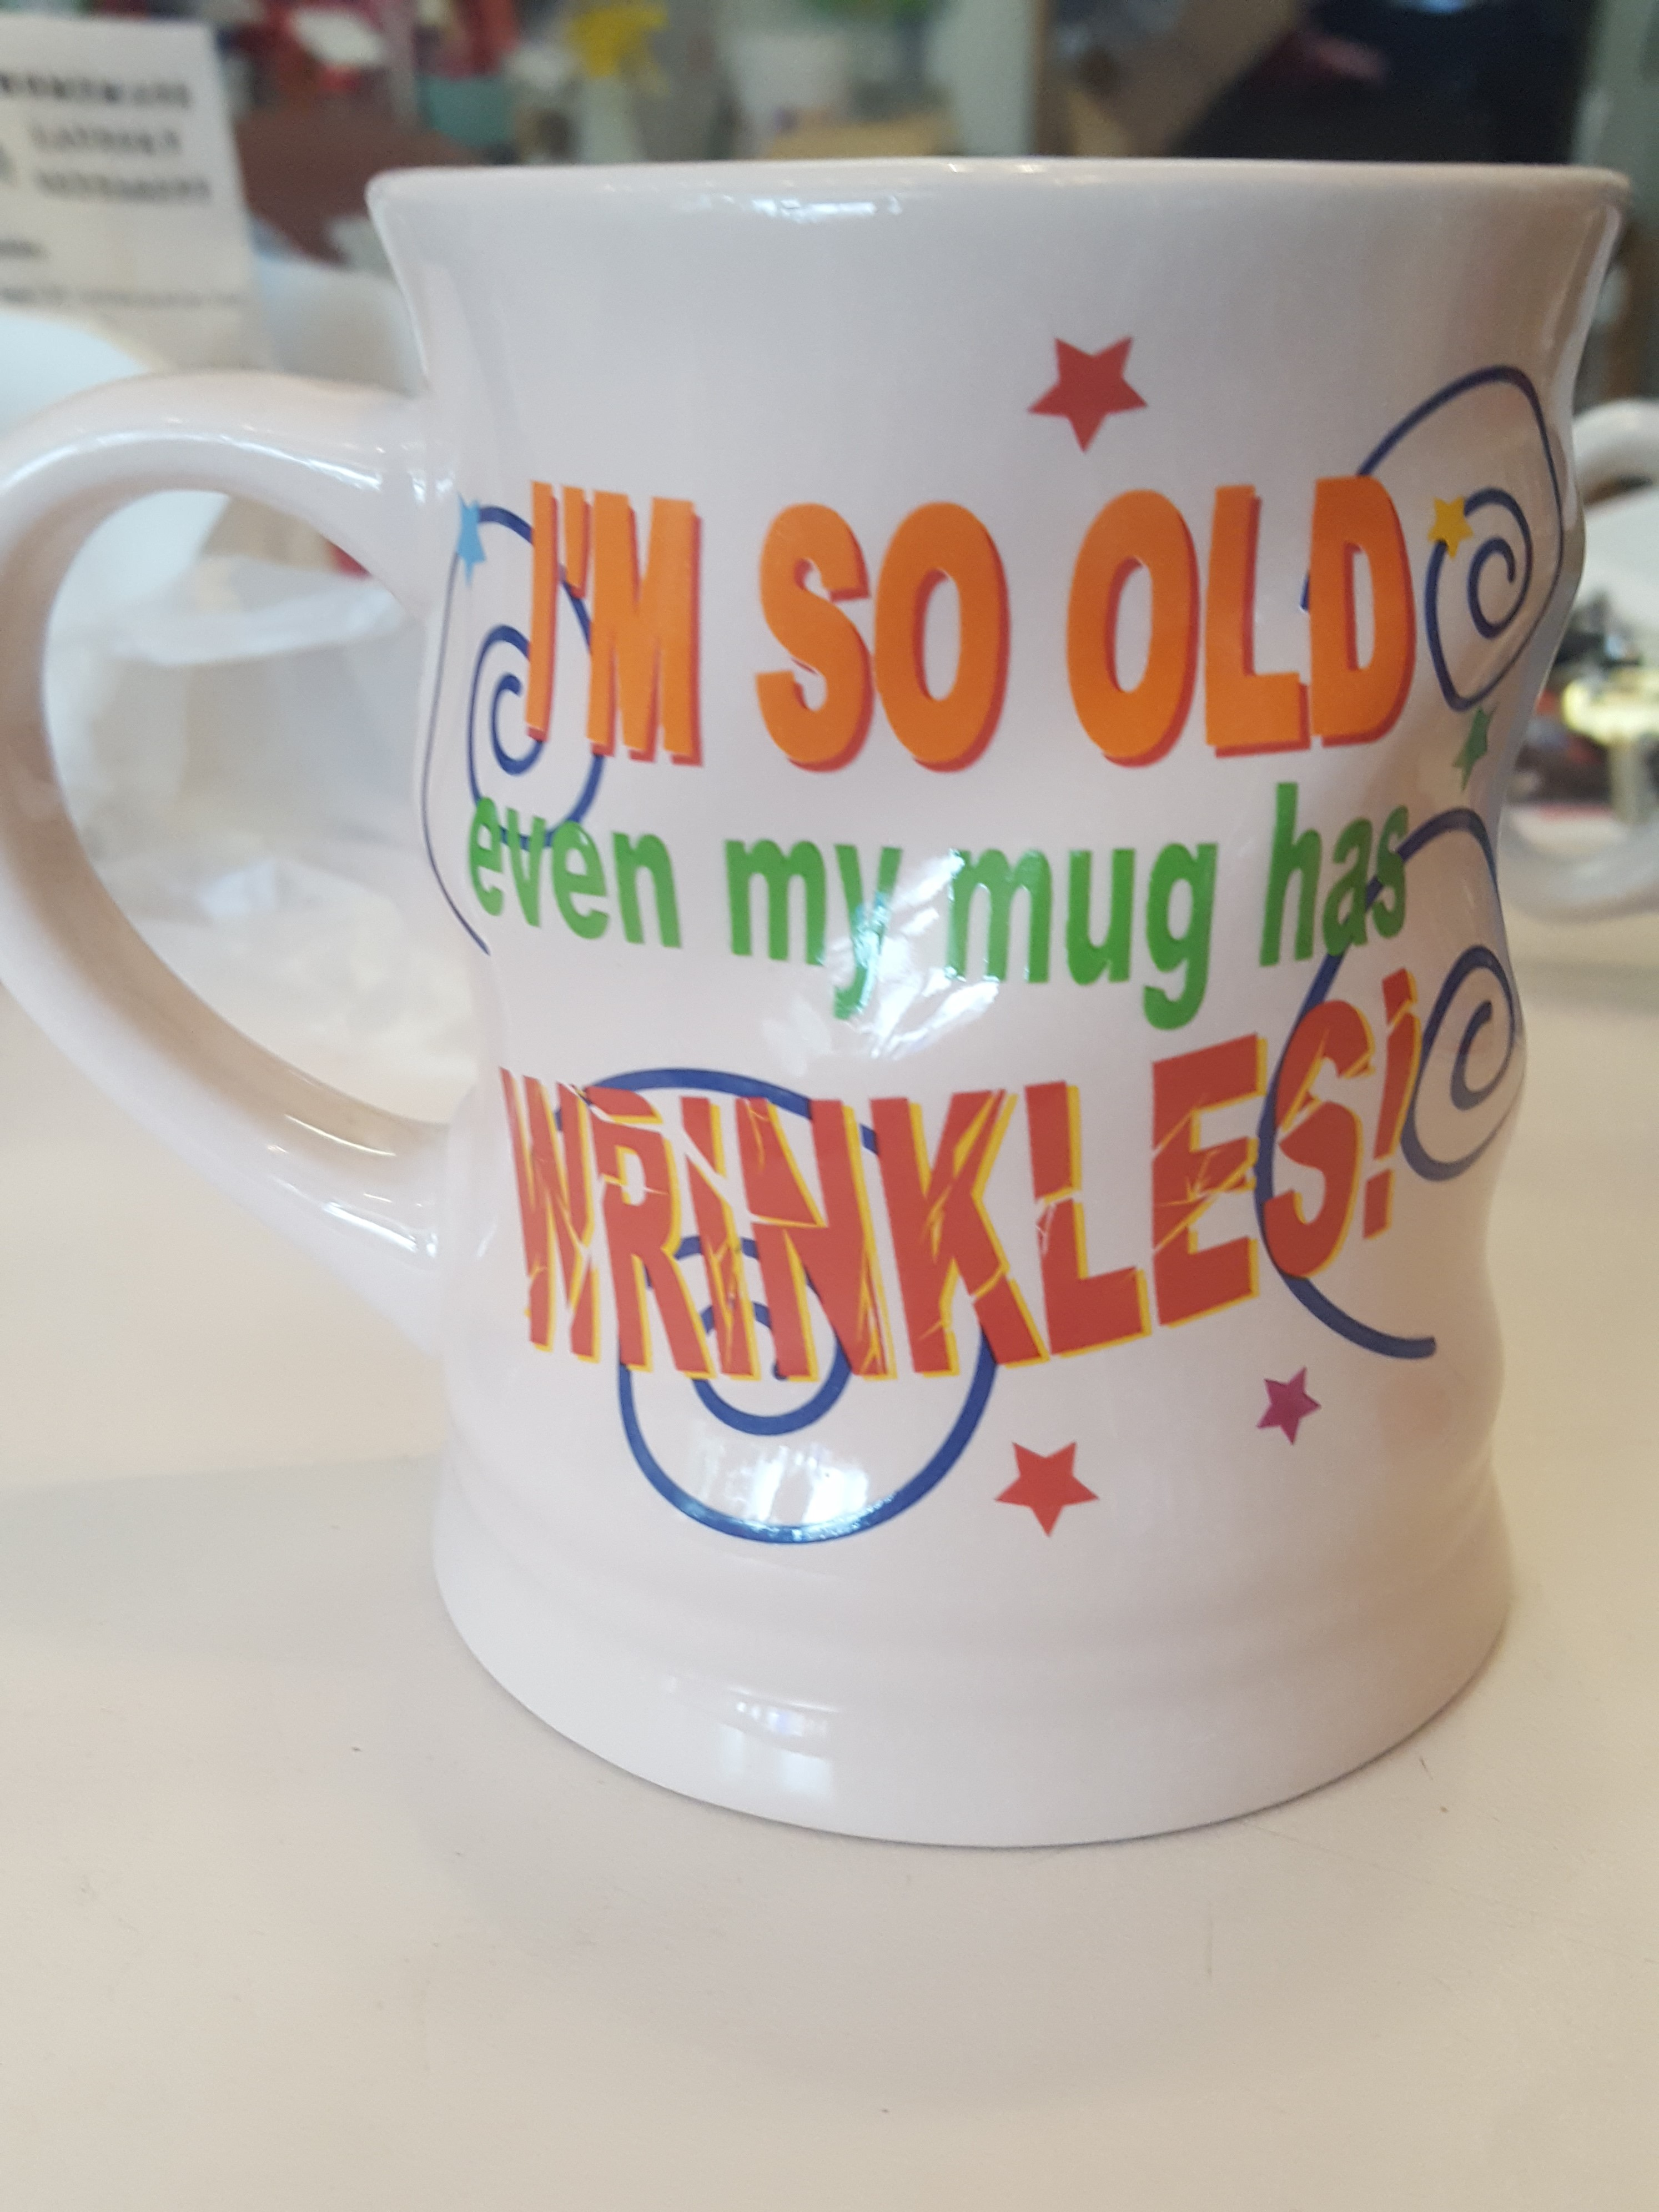 Im So Old My Mug has Wrinkles!